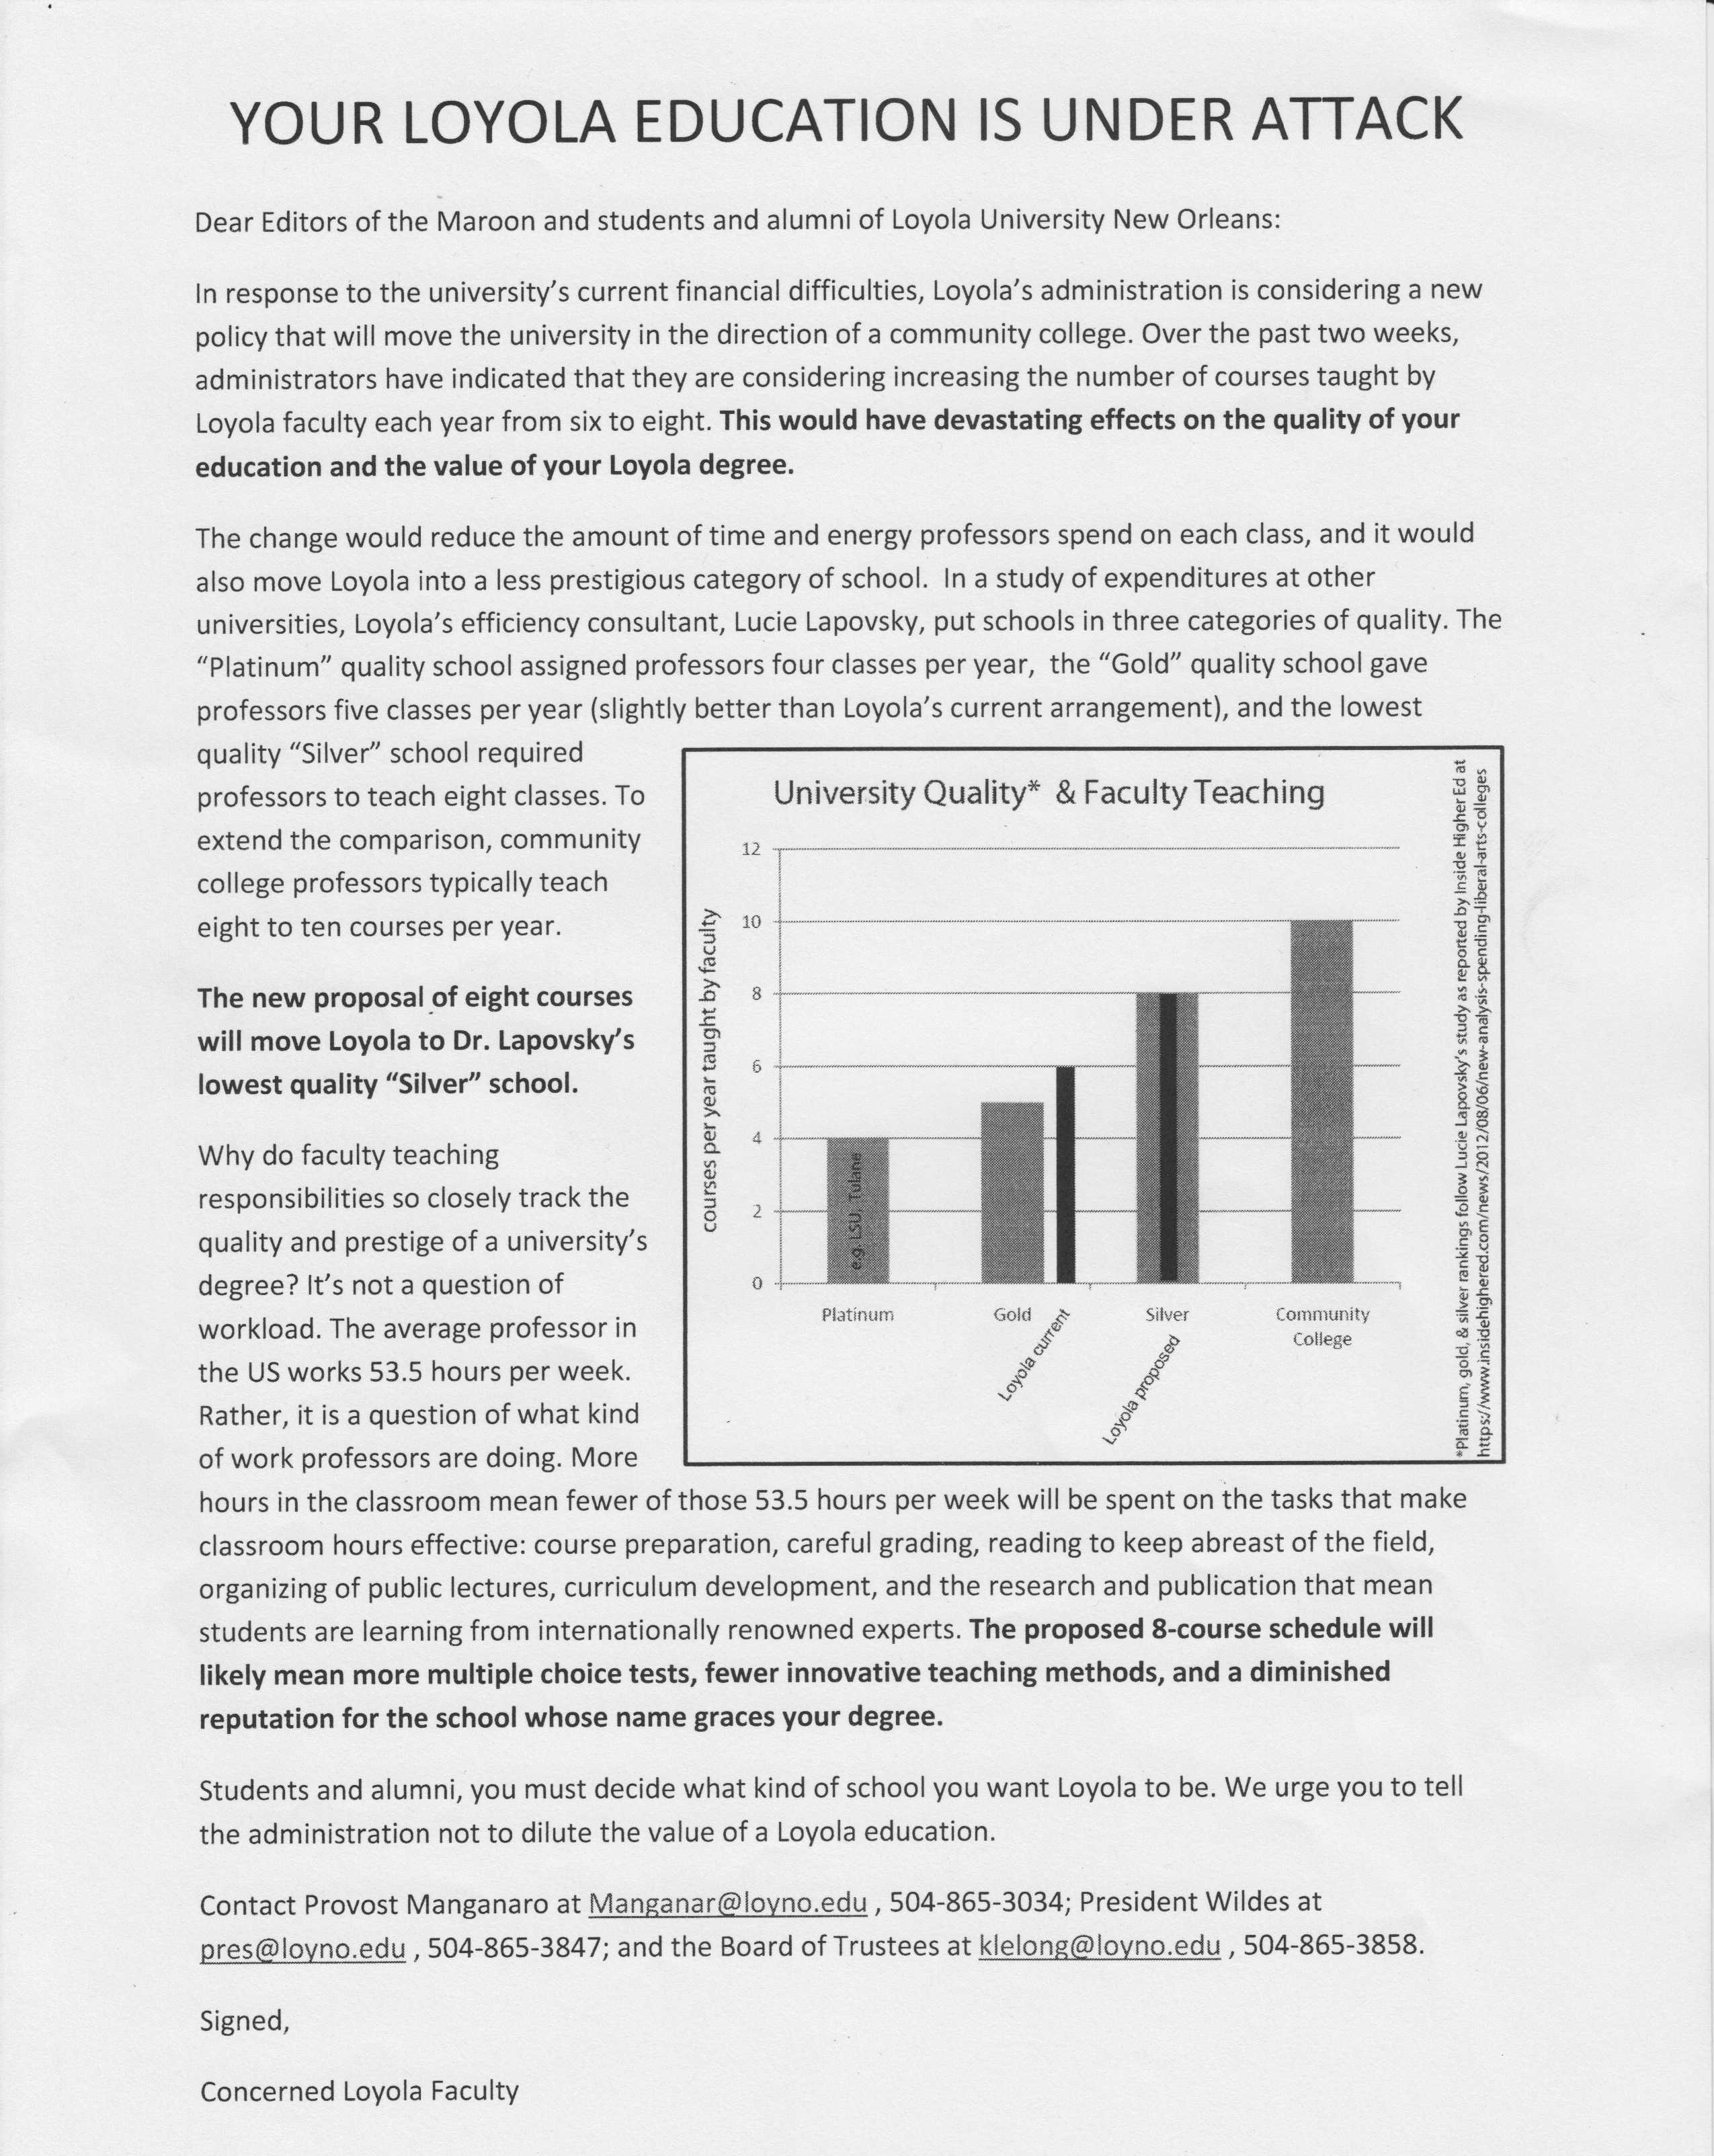 This letter from an unconfirmed source was distributed around campus raising concerns about faculty course load.